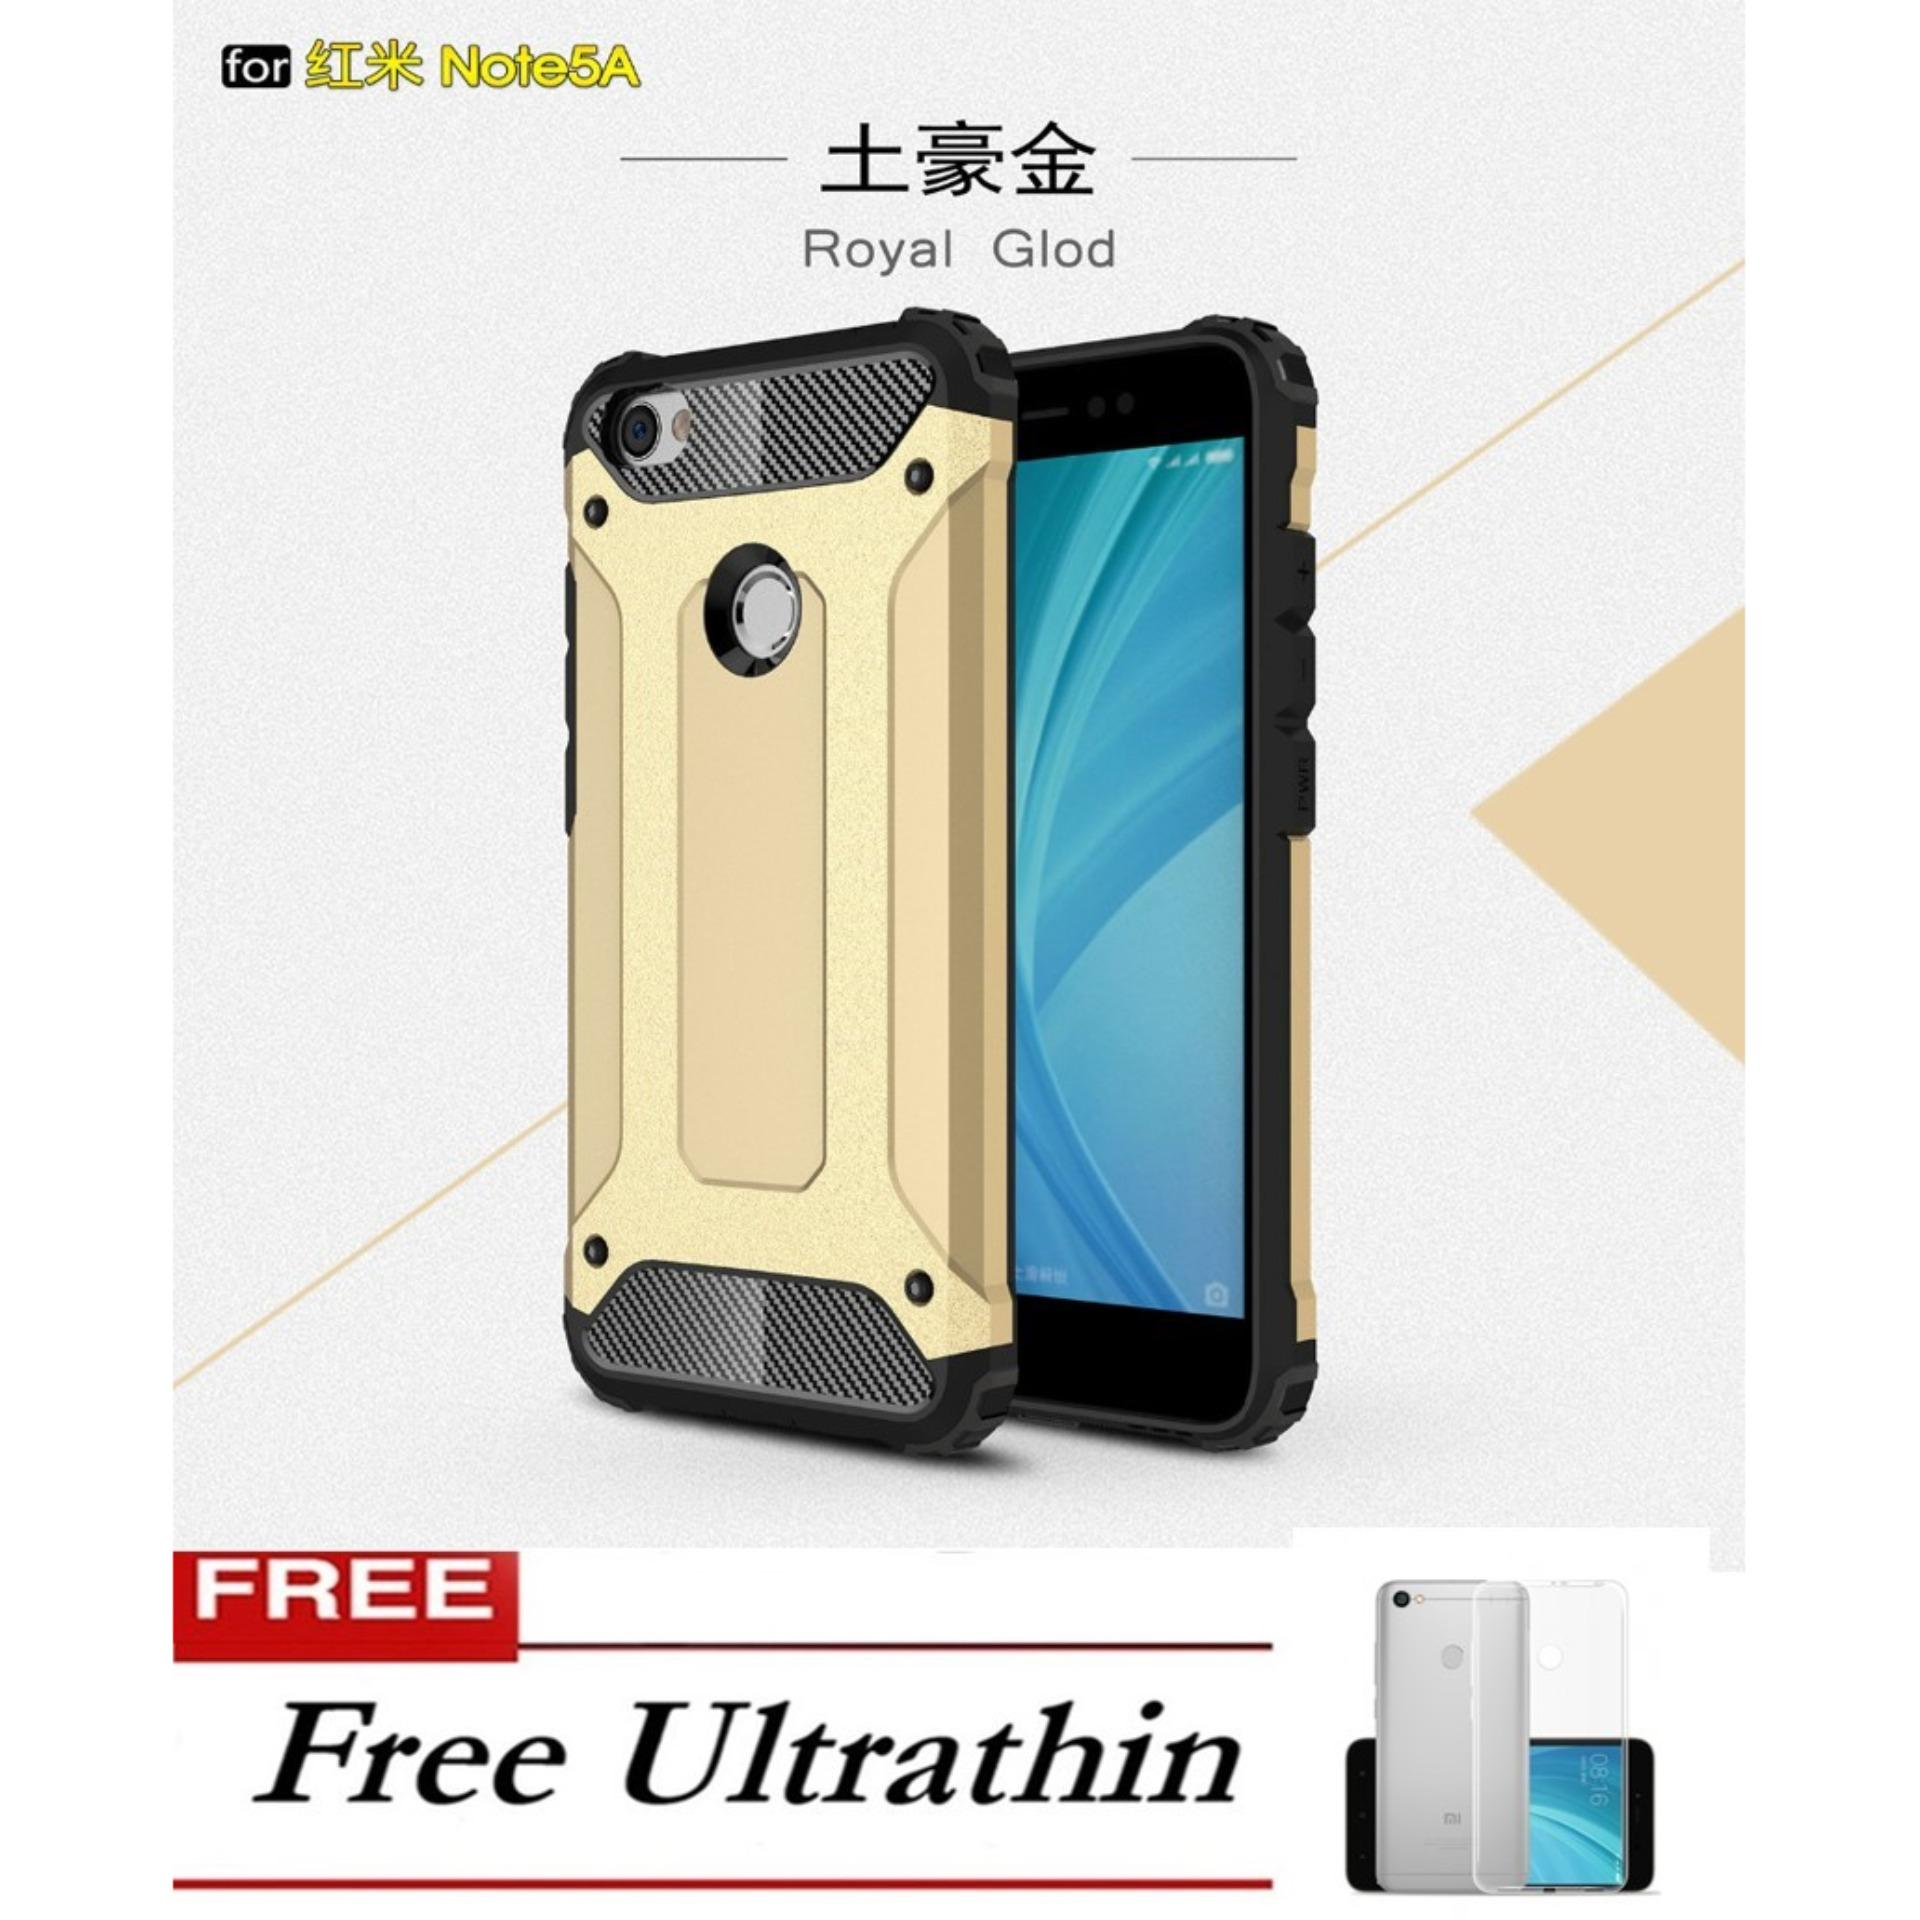 Jual Ume Ultrathin For Xiaomi Redmi Note 2 Ultrafit Air Case 03mm Hitam Hard Cover Robot Shockproof Armor 5a Gold Free